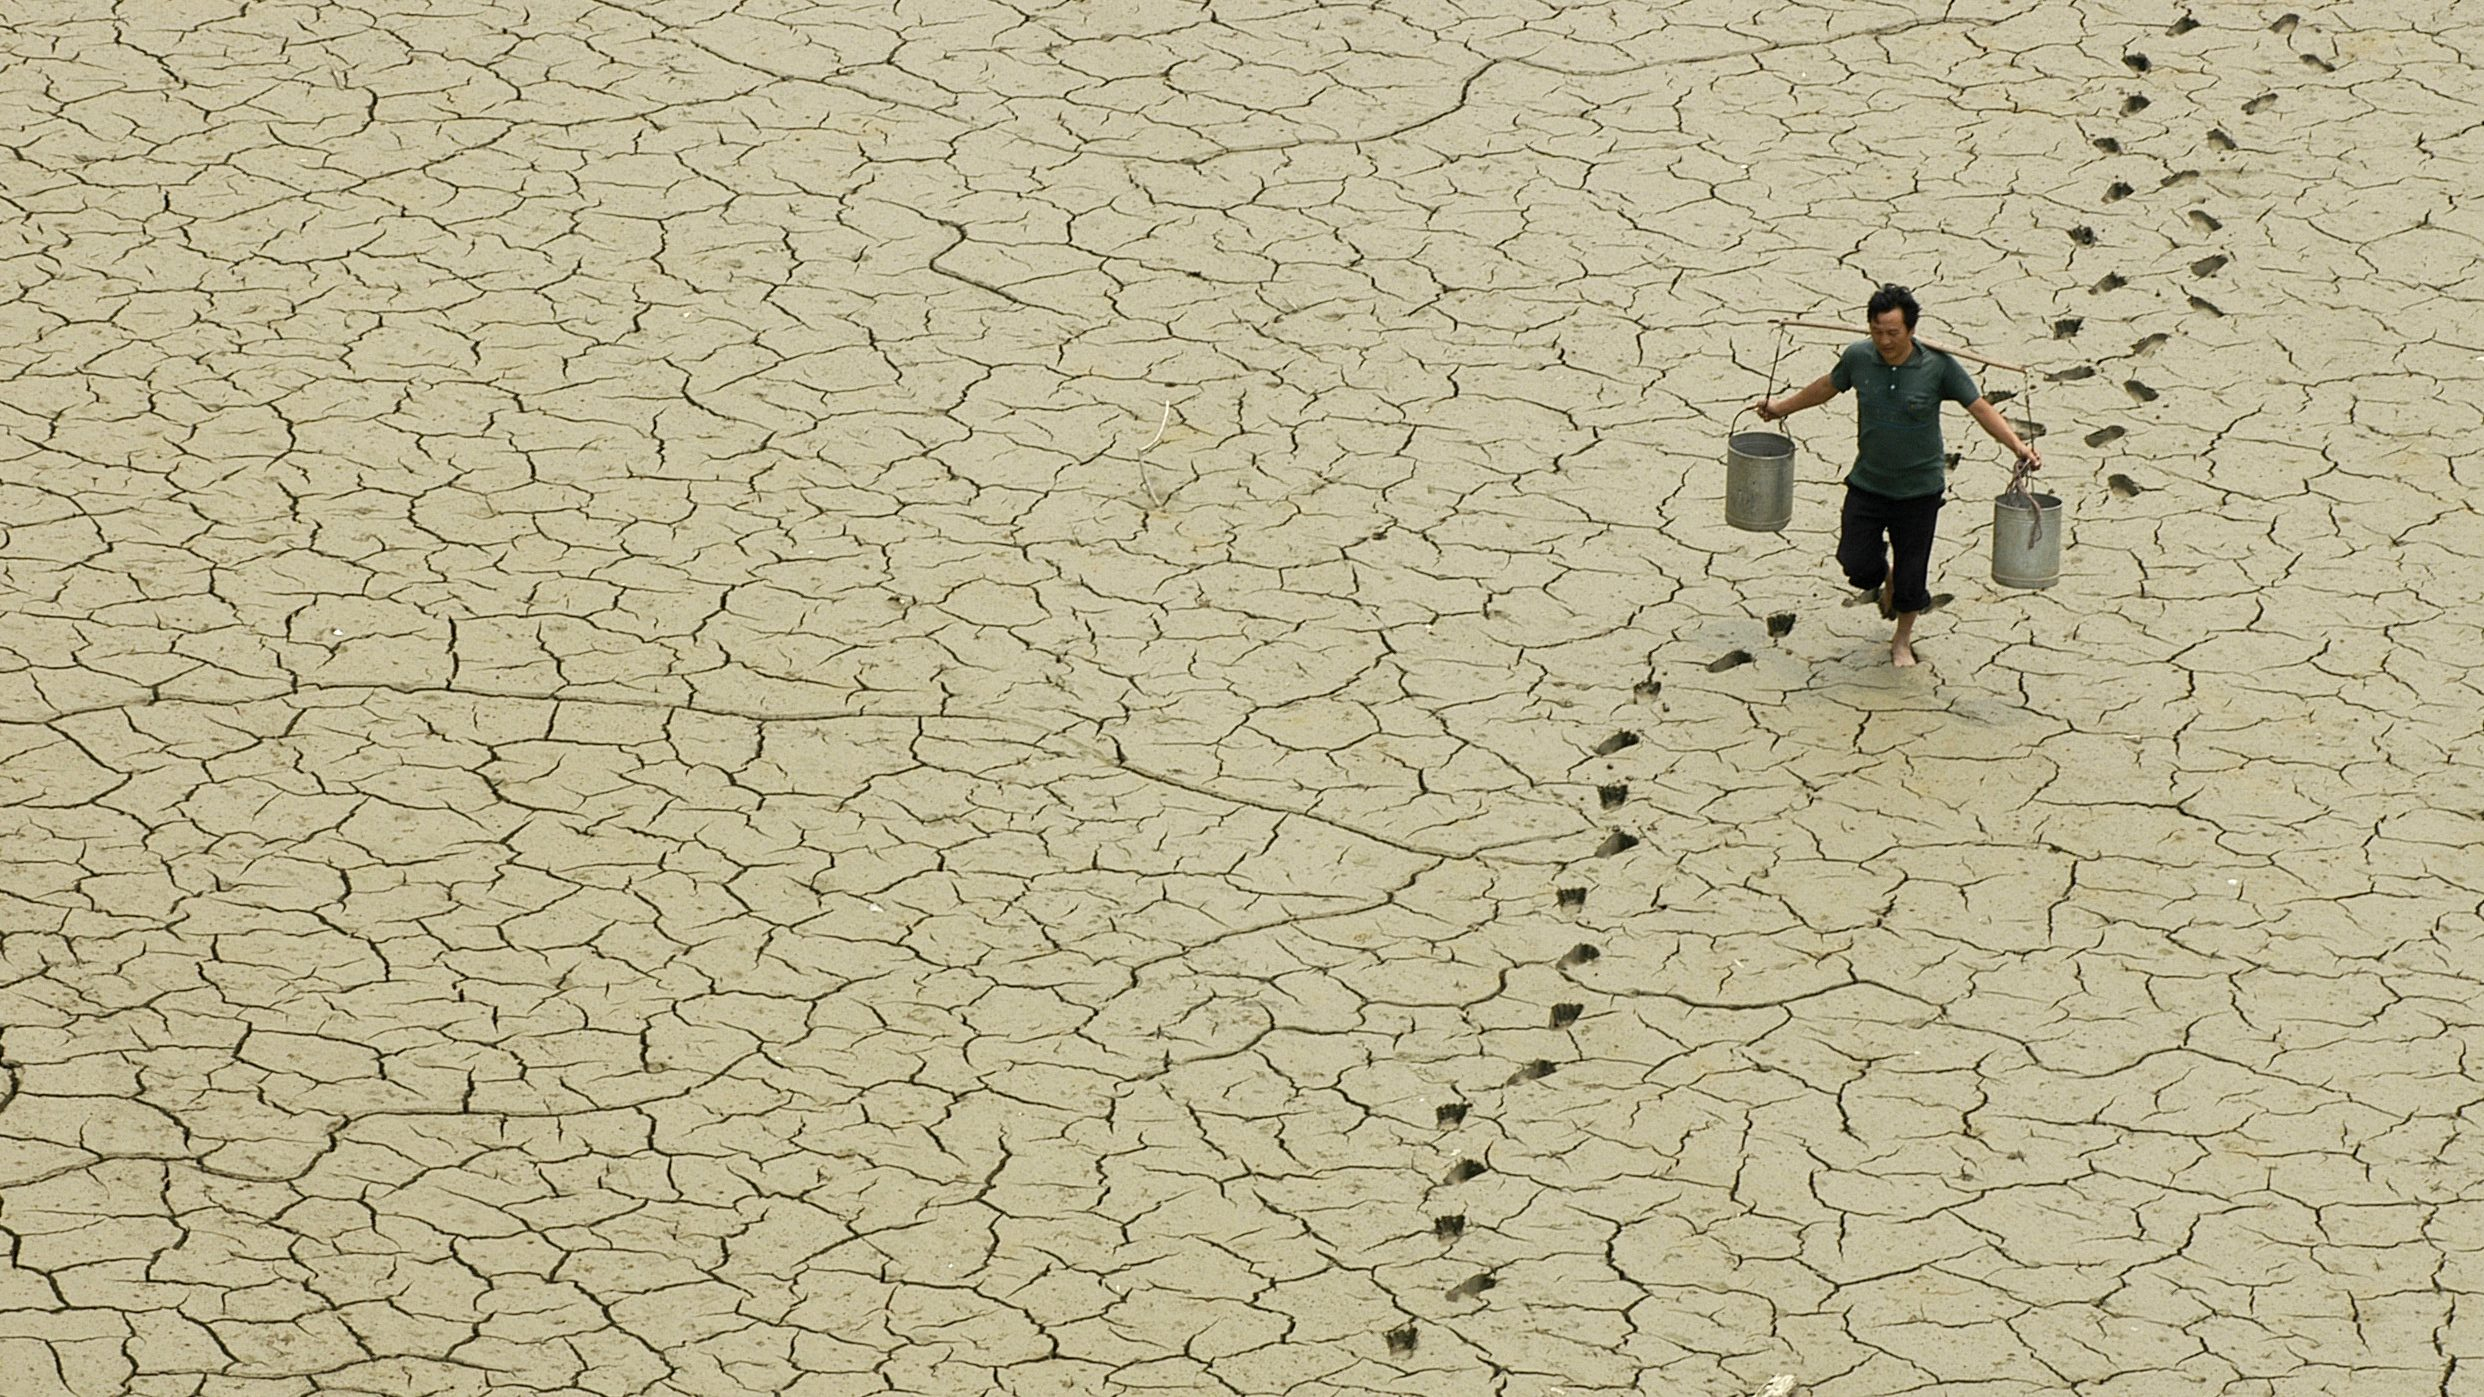 A farmer walks on a dried-up pond on the outskirts of Baokang, central China's Hubei province, June 10, 2007. REUTERS/Stringer (CHINA) CHINA OUT - RTR1QNJ3